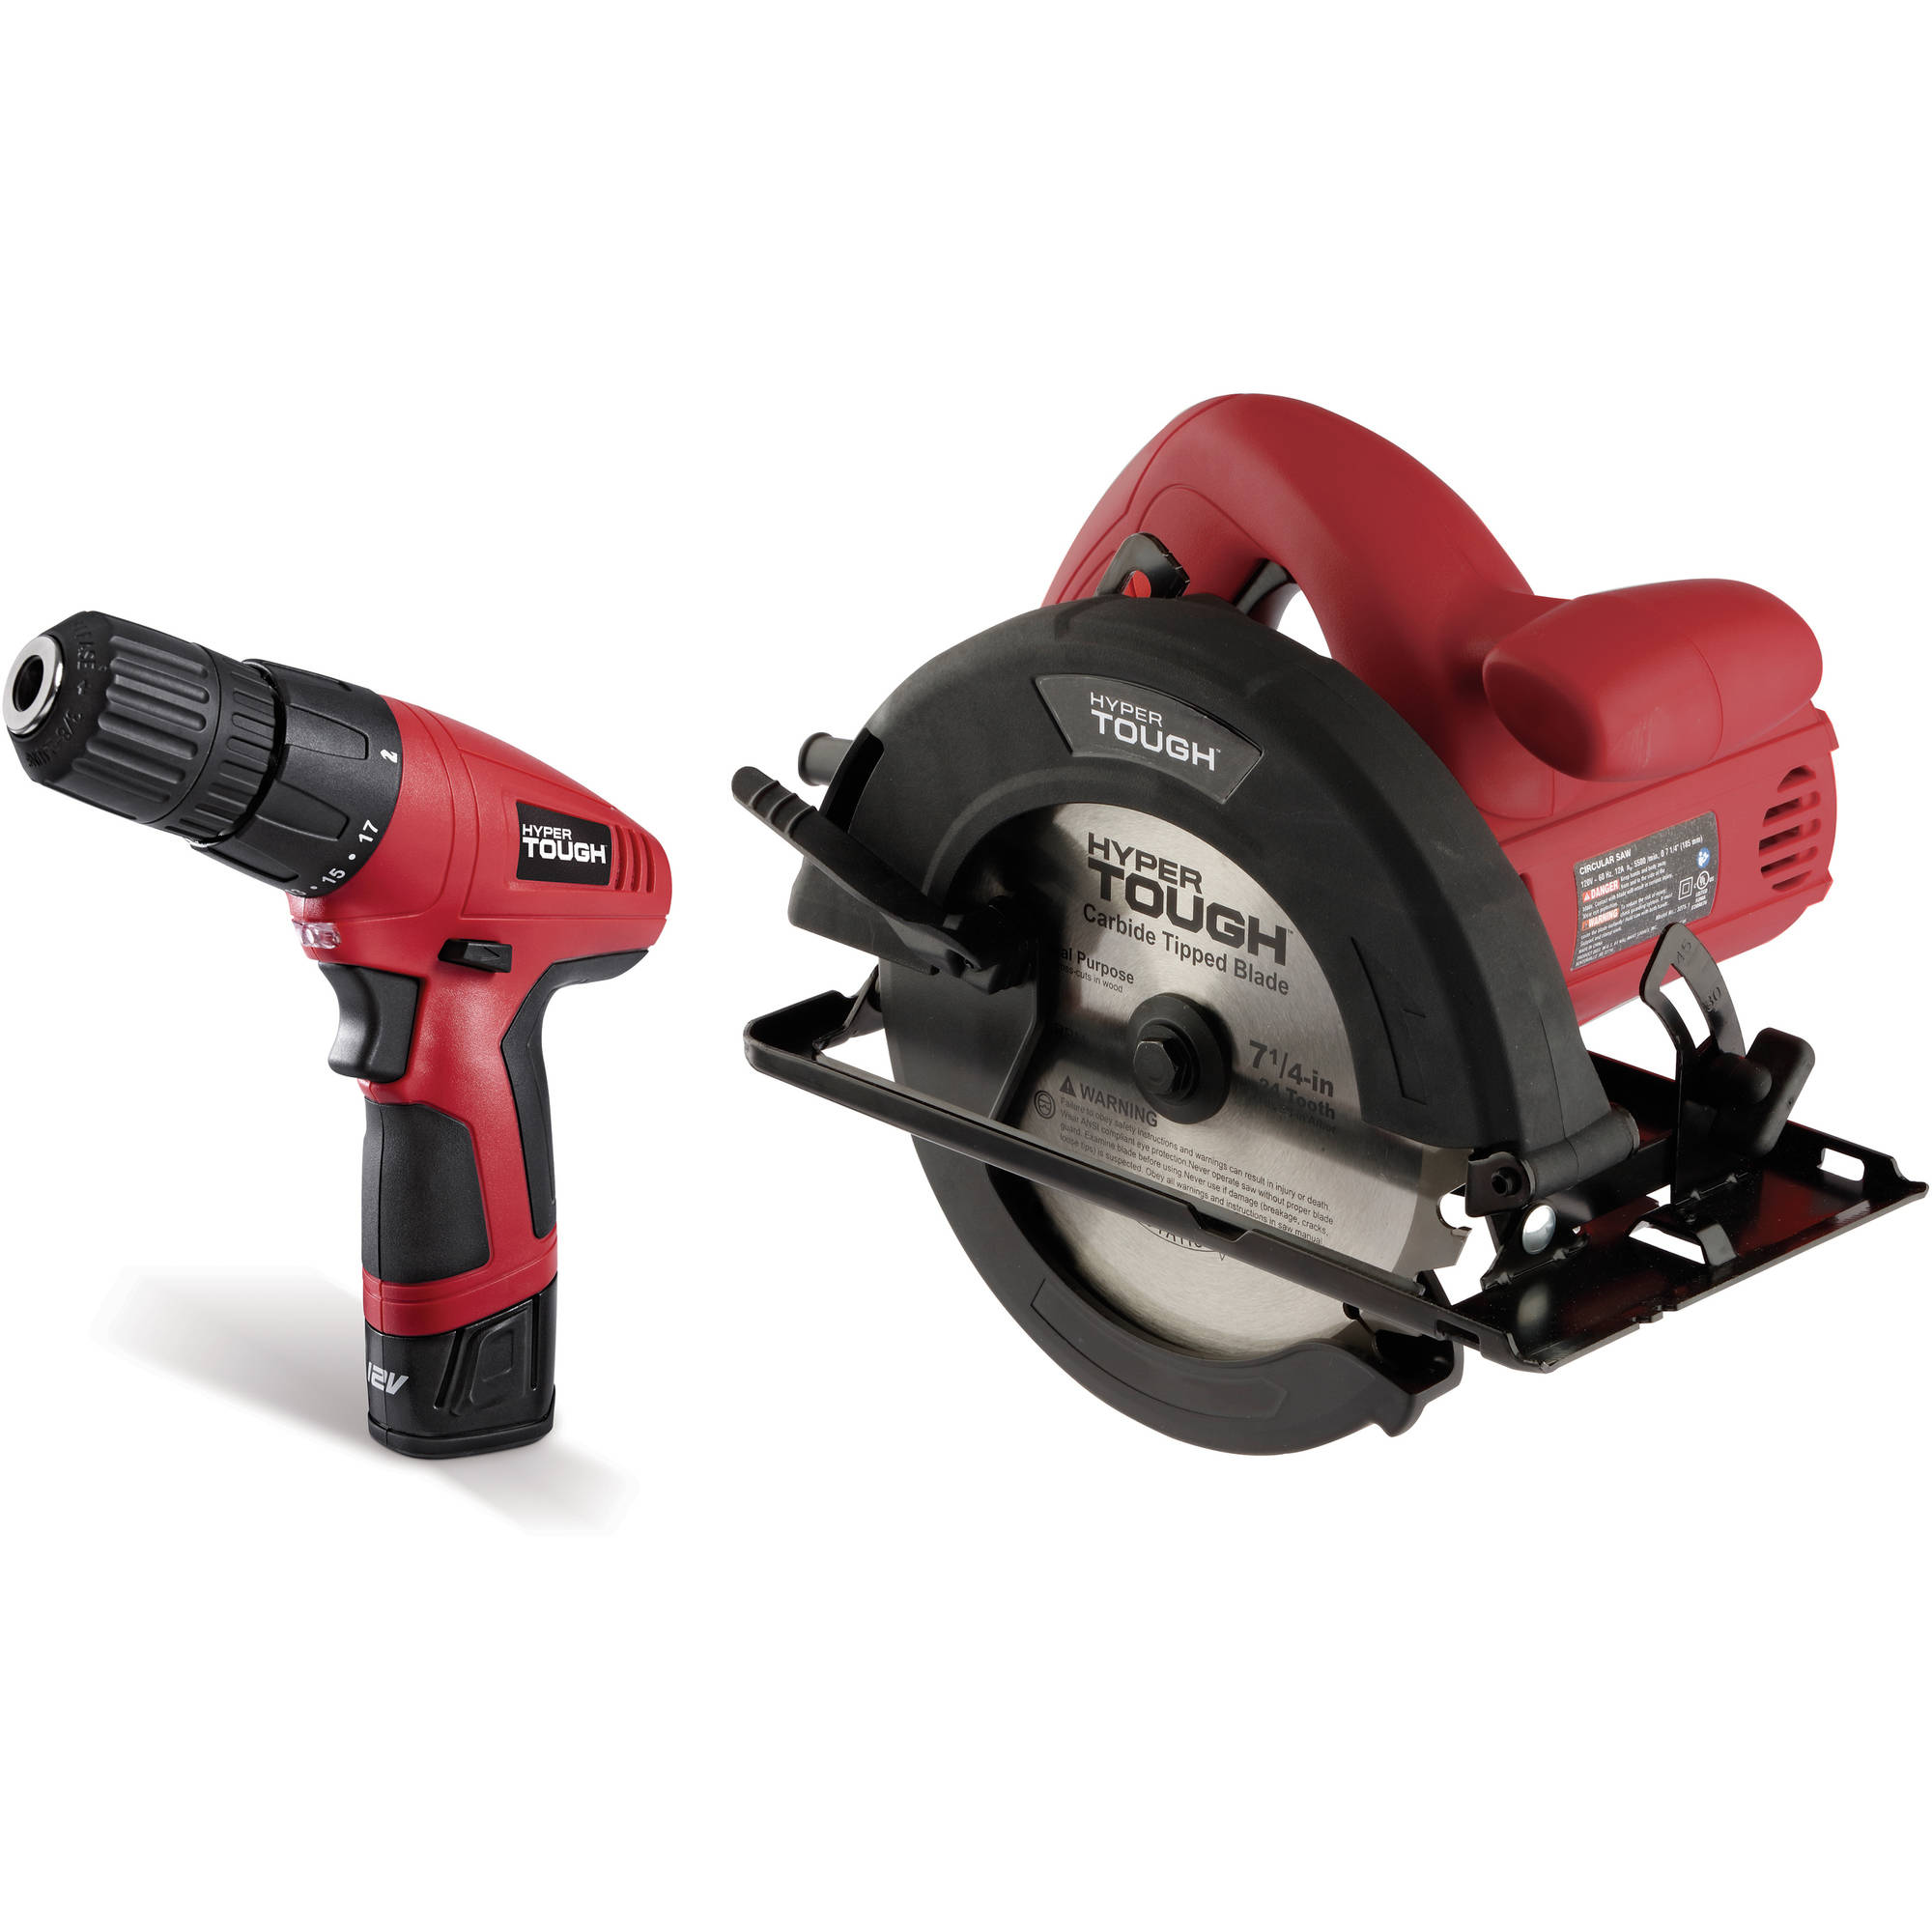 Hyper Tough 7351 12-Volt Lithium Ion Drill-Driver and 12-Amp Circular Saw Combo Kit